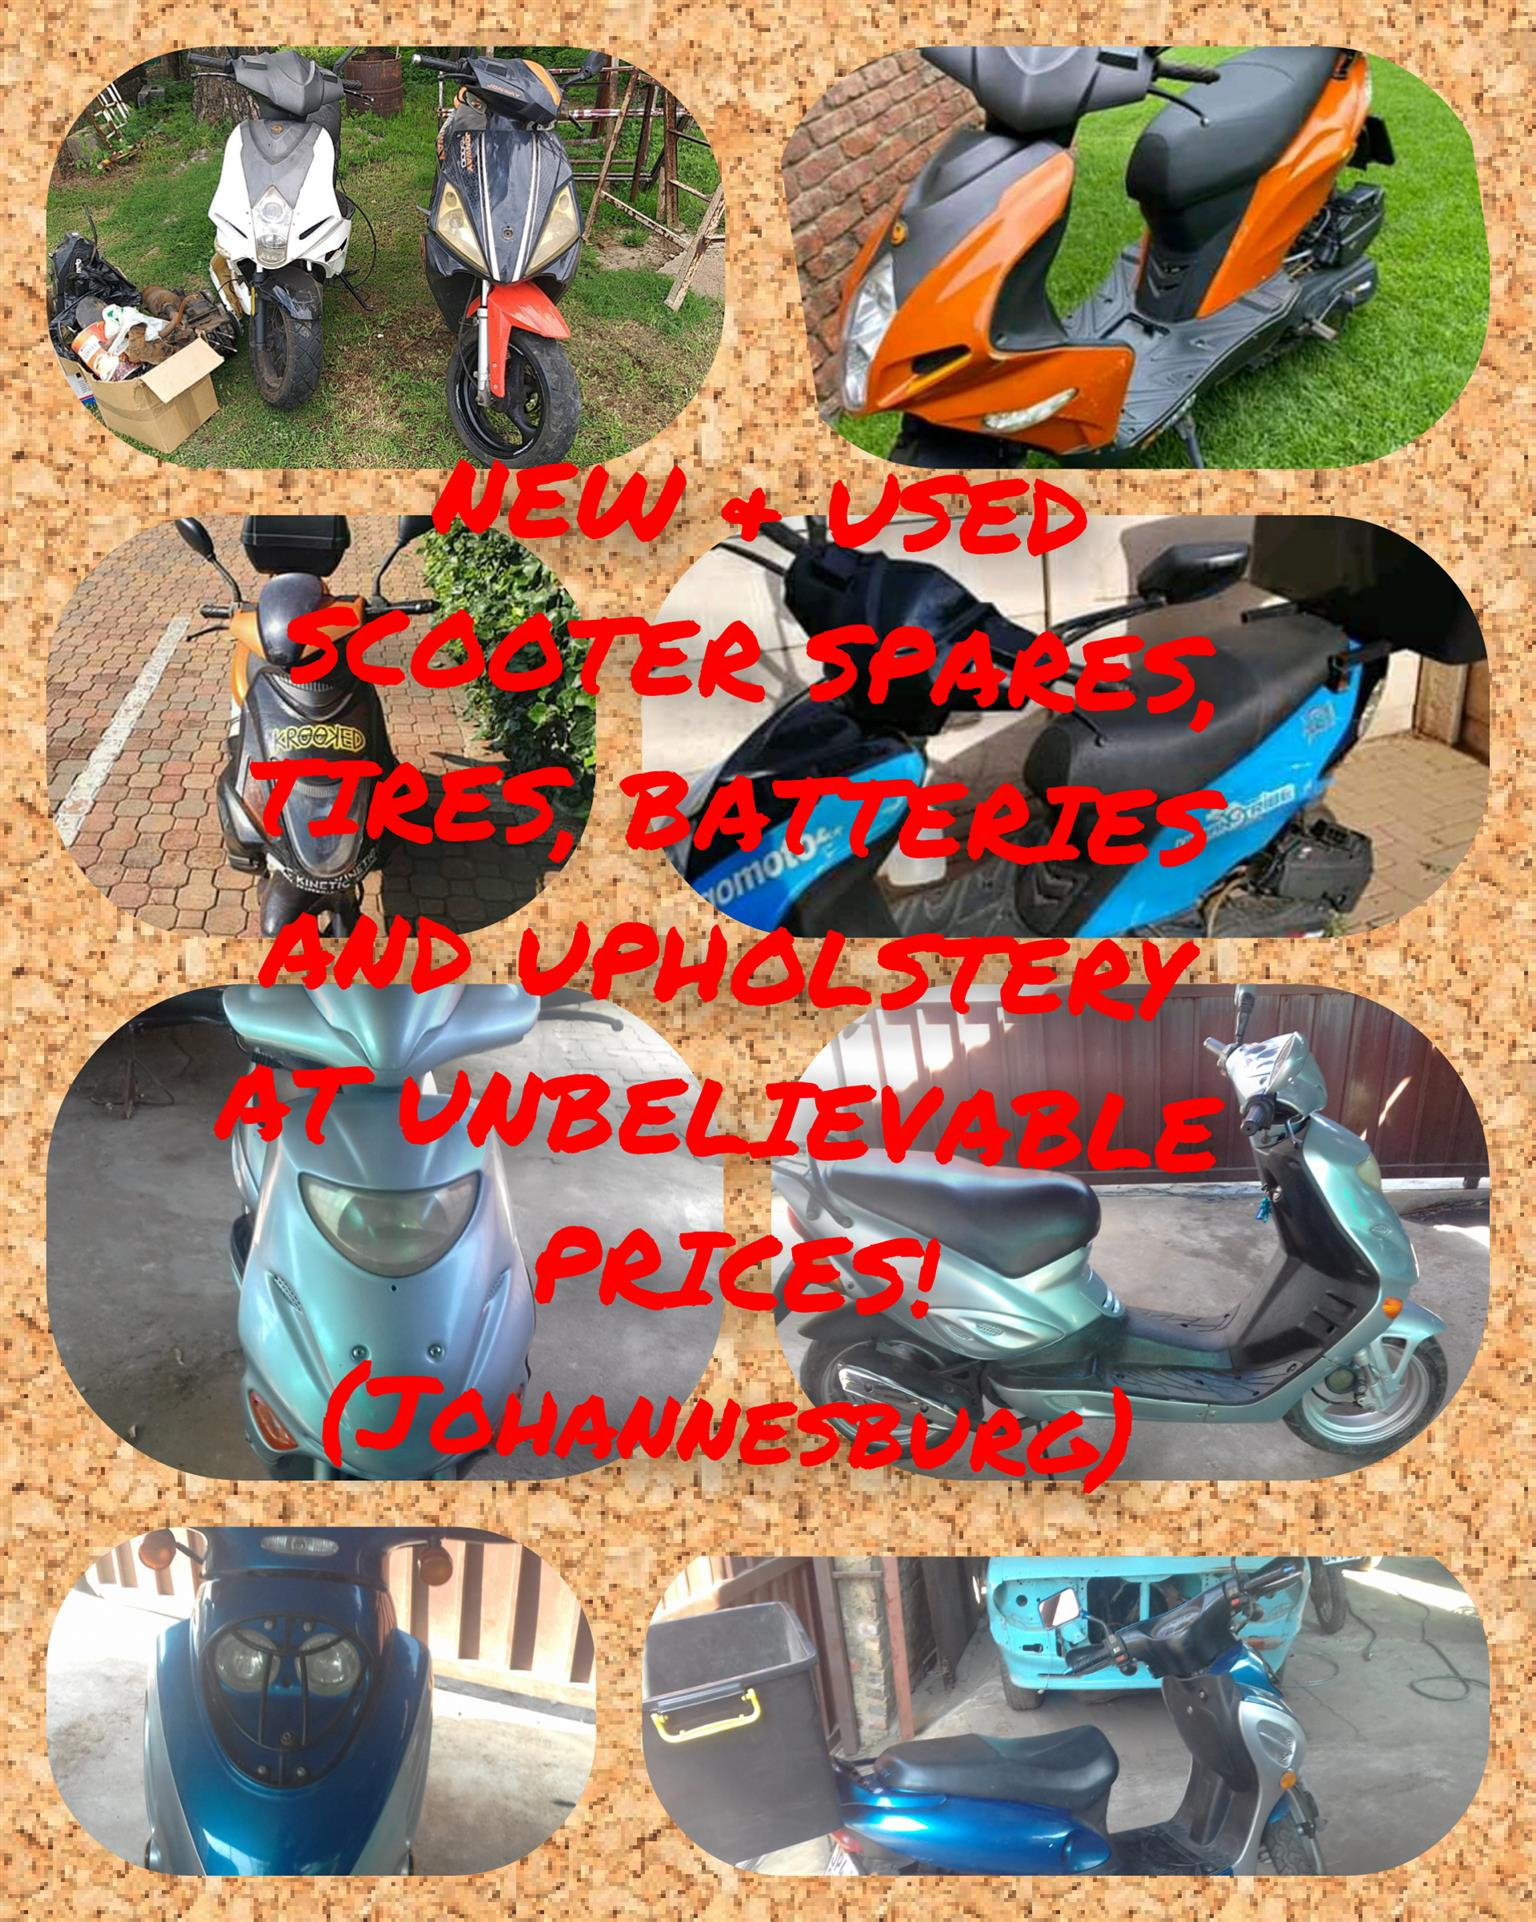 New and used scooter spares at amazing prices!